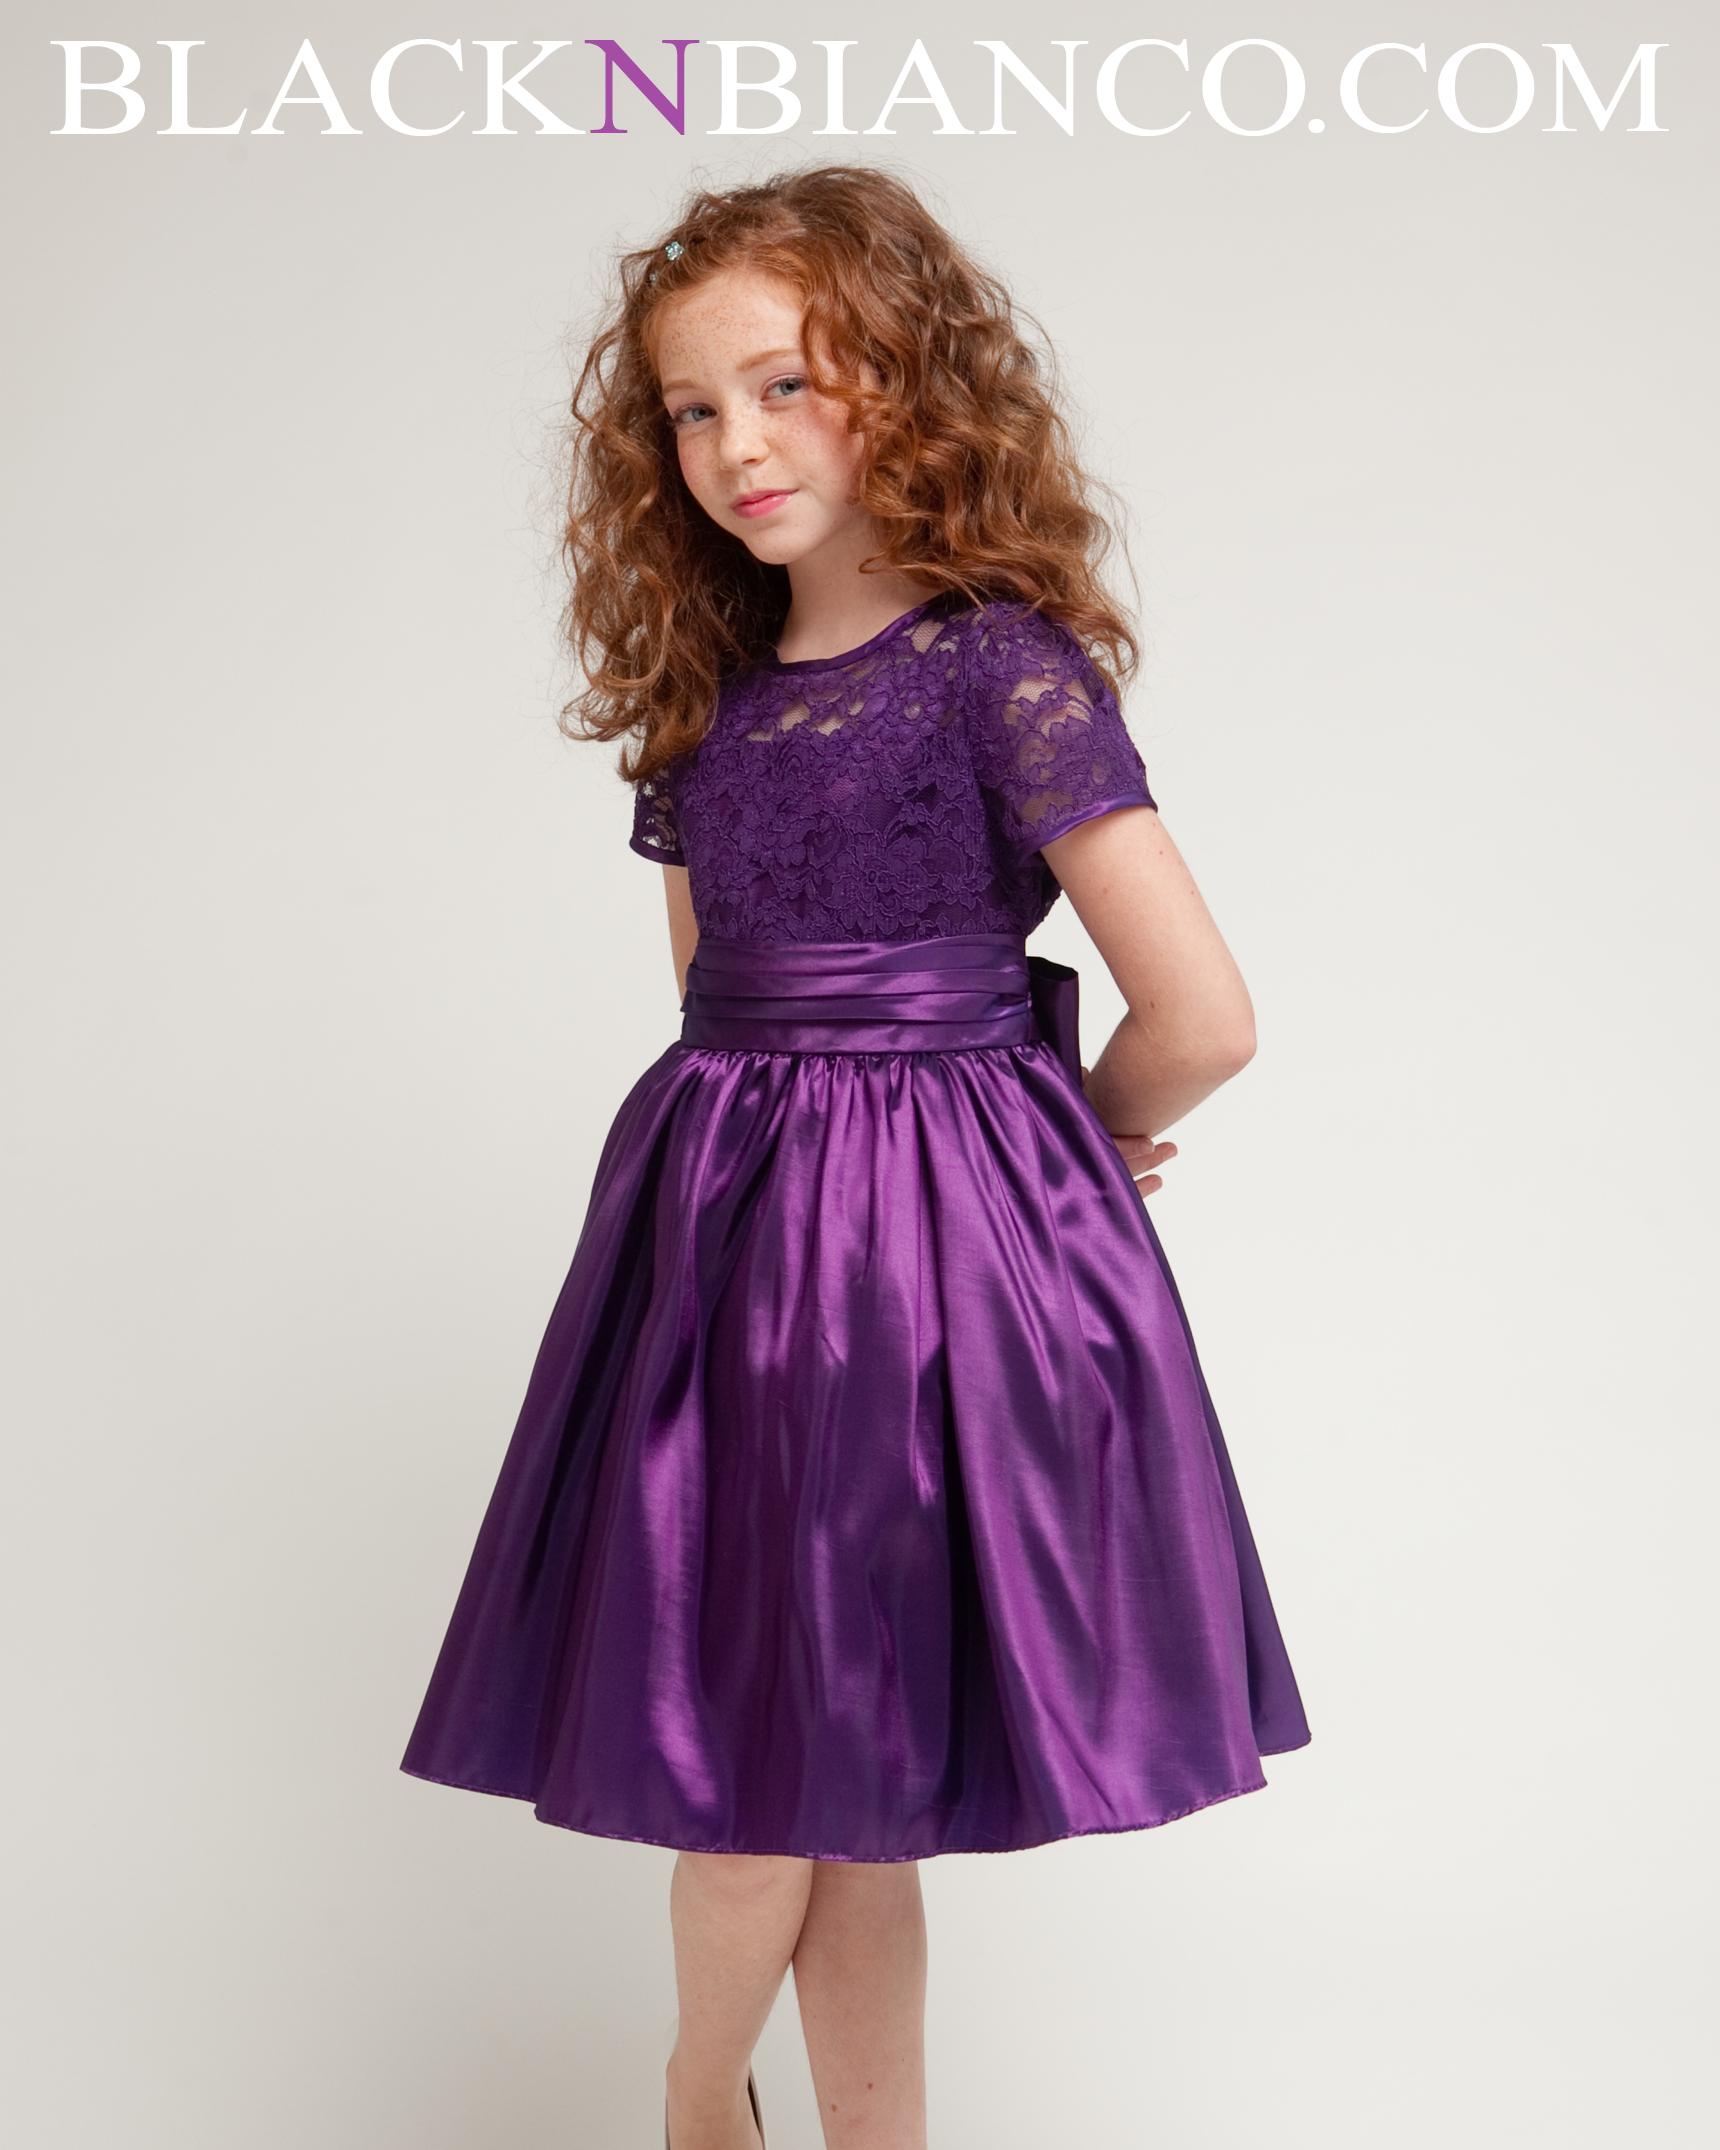 Our new flower girl dresses have arrived for the season